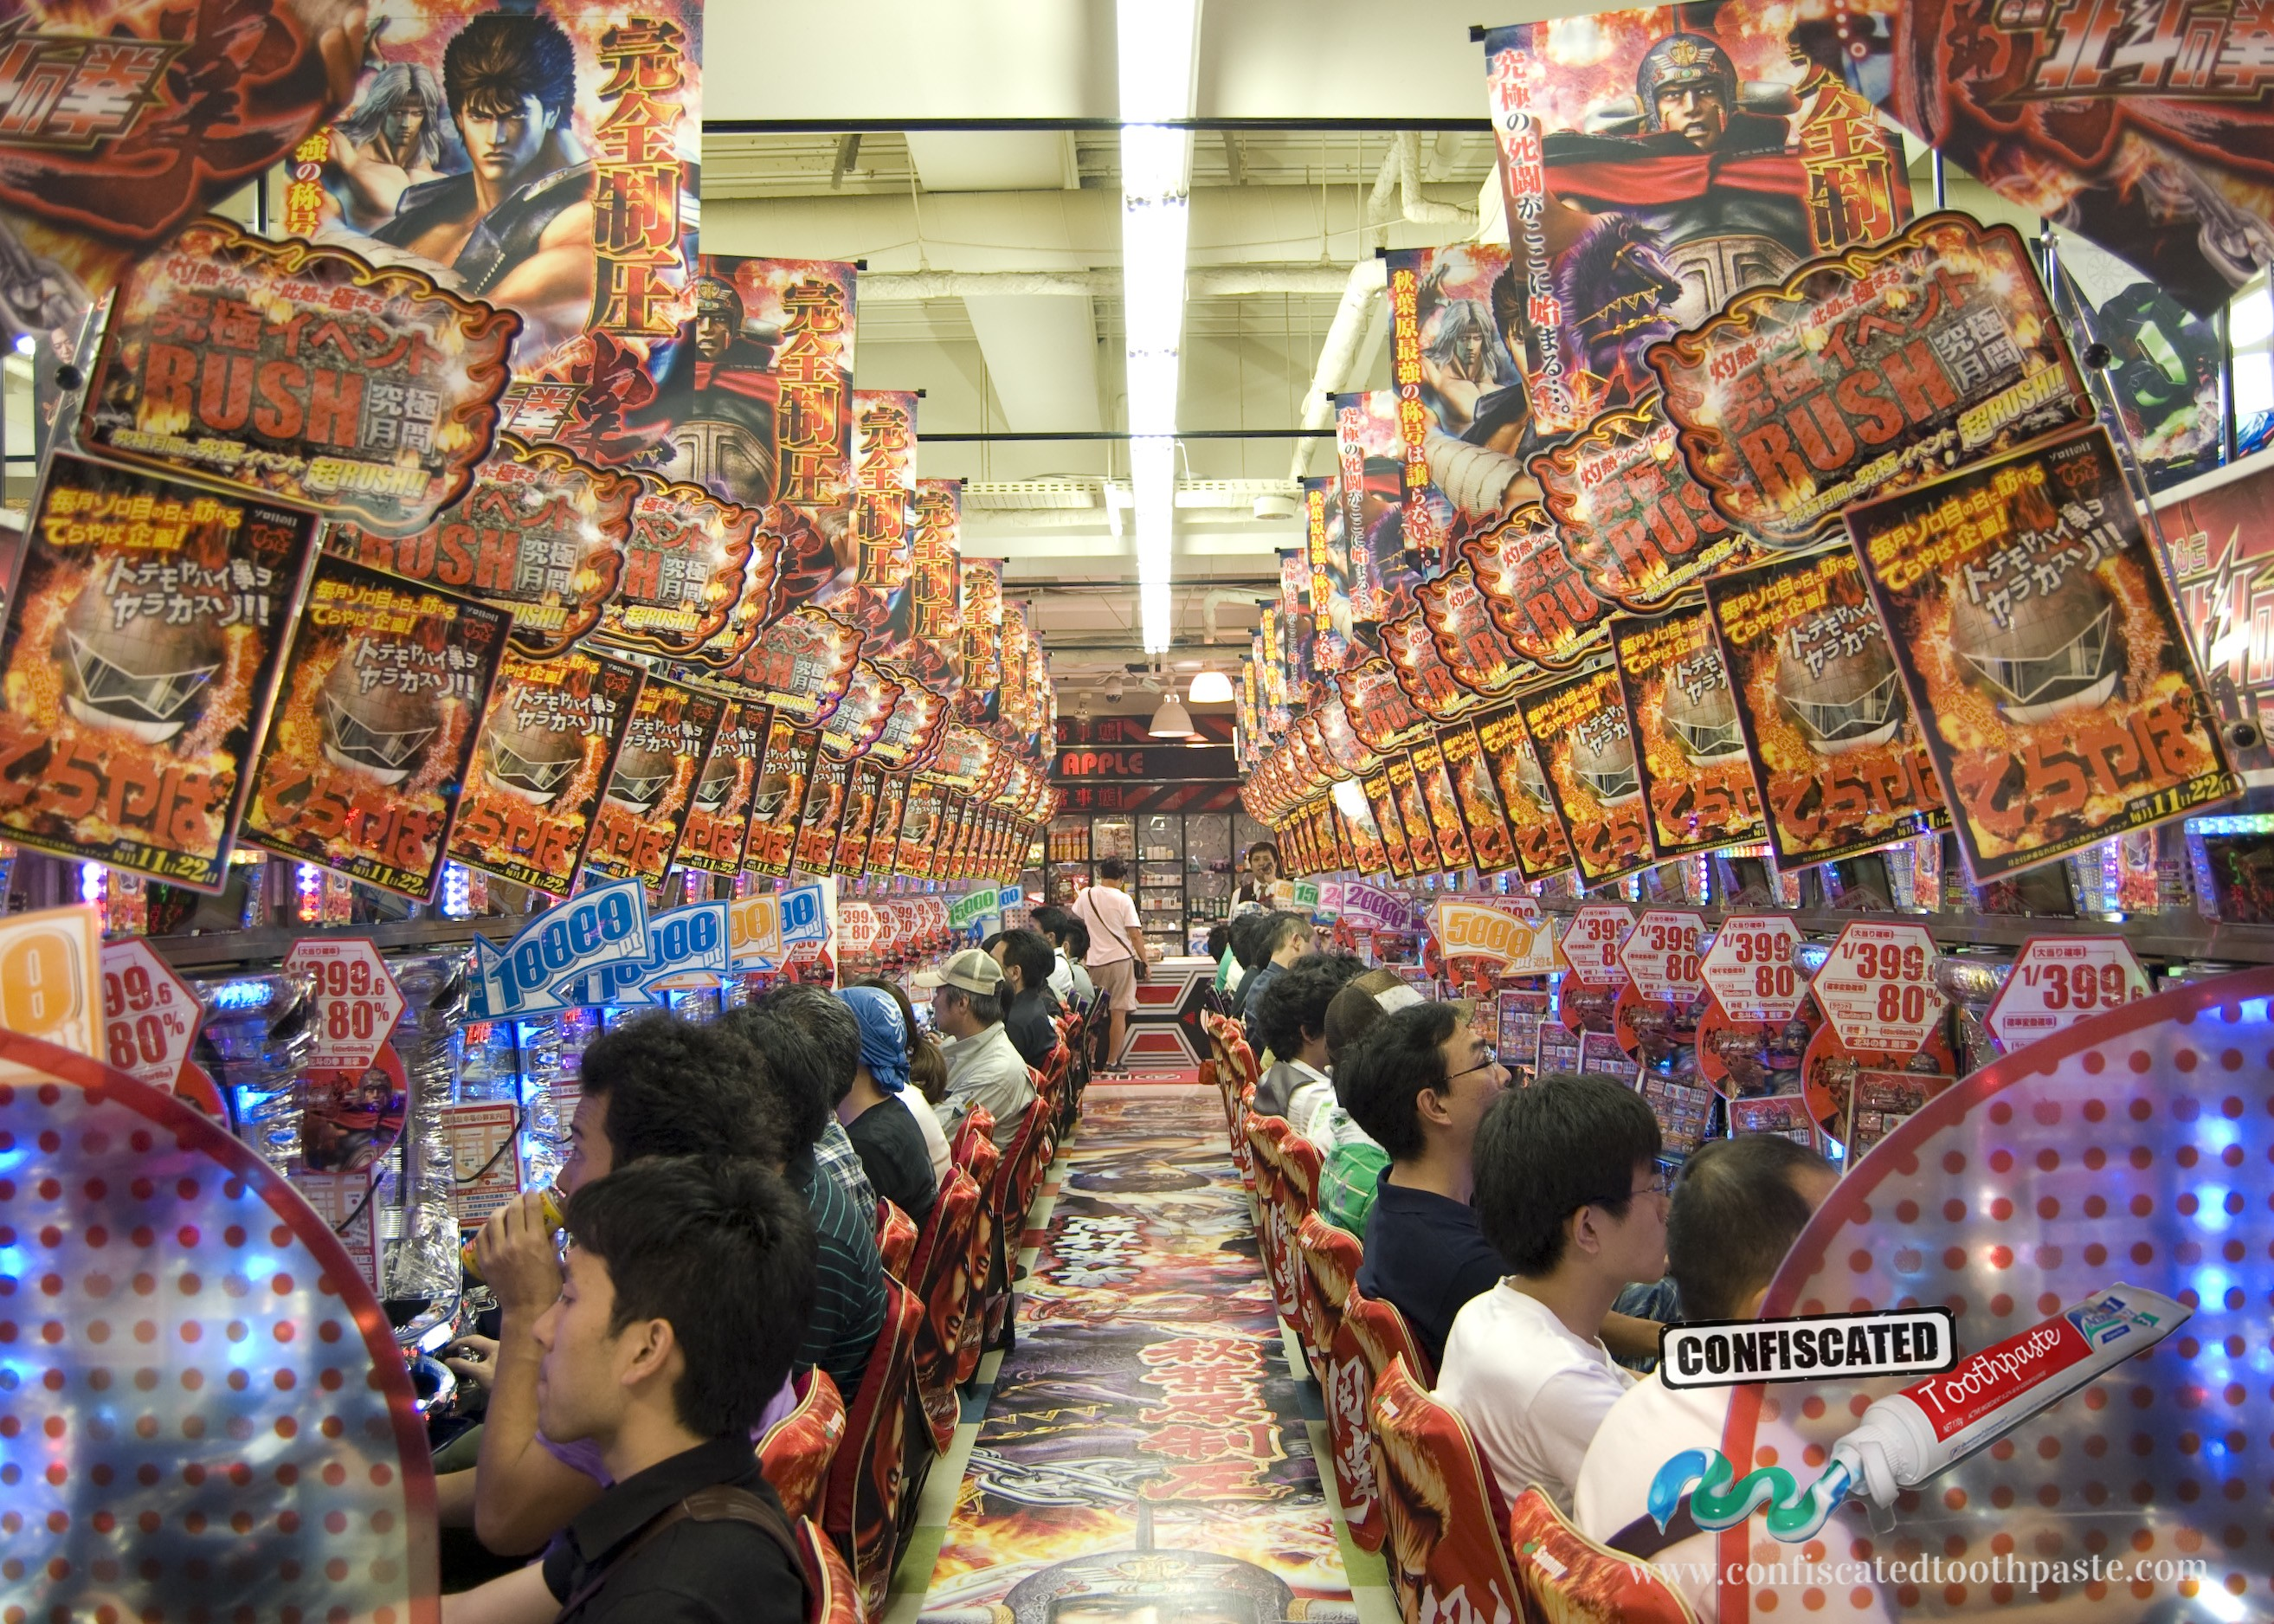 From a Terrorist Bombing to a Pachinko Jackpot